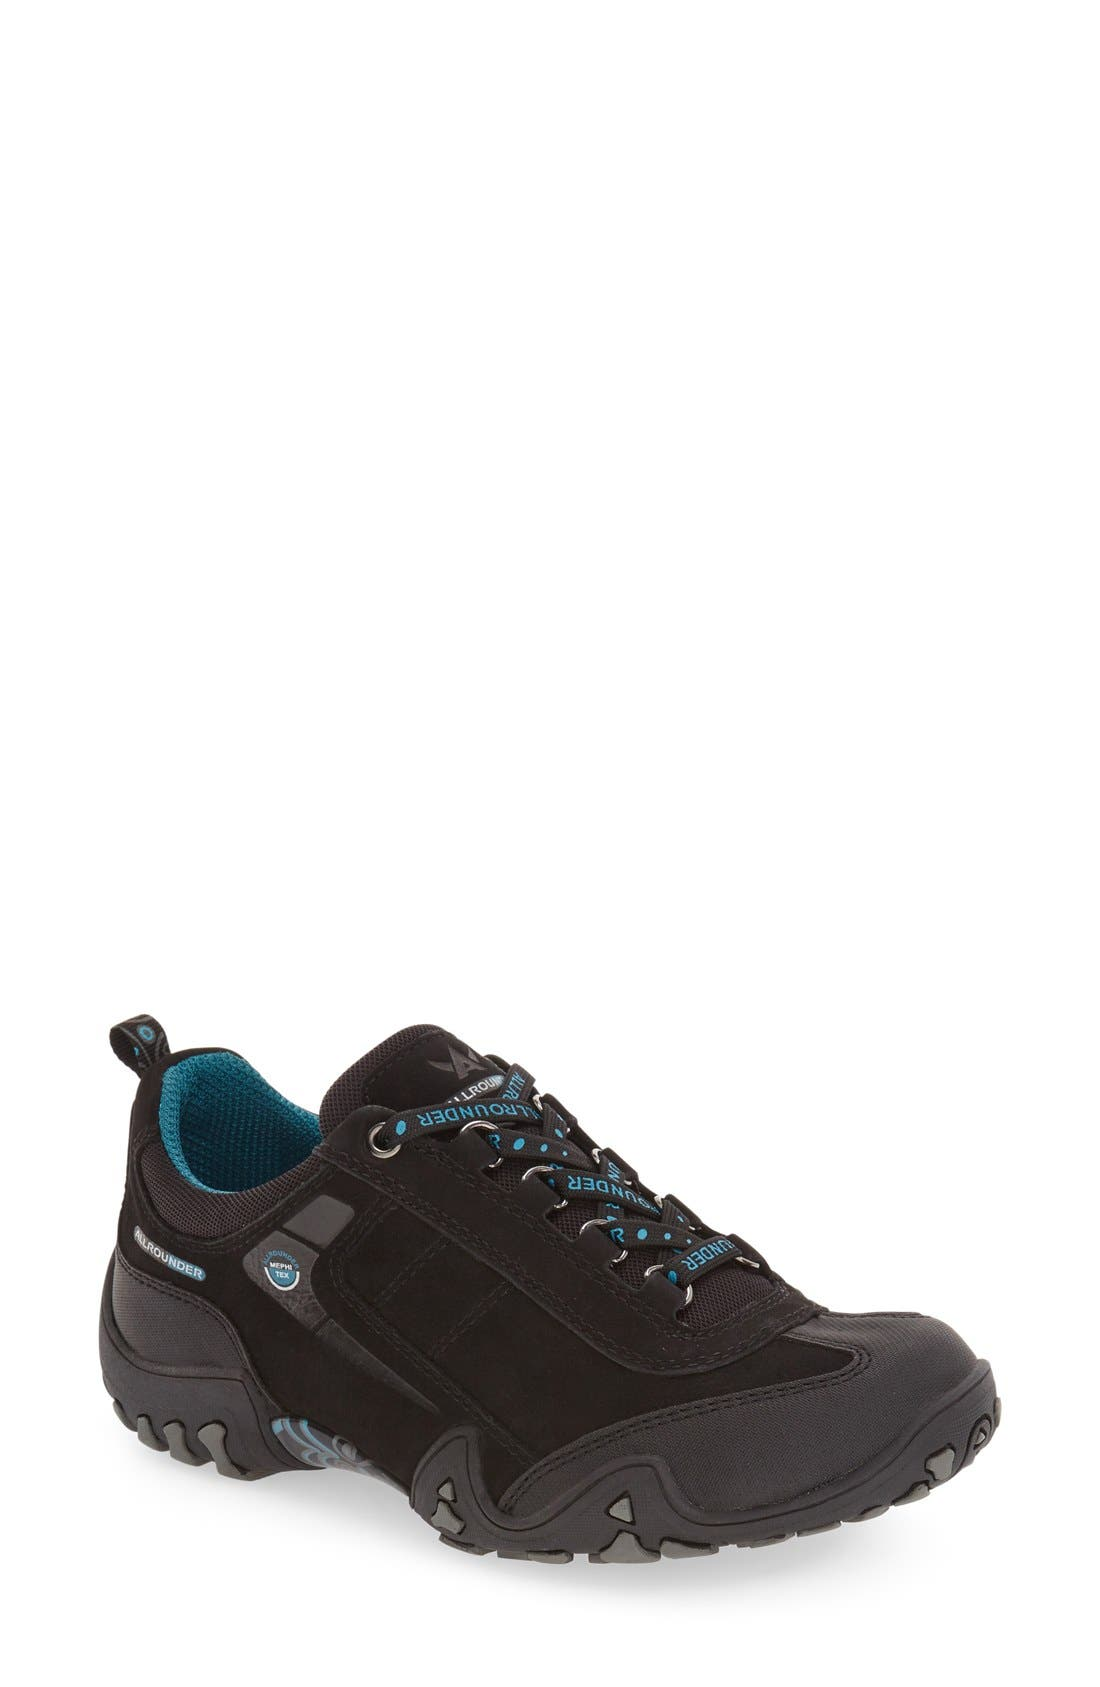 ALLROUNDER BY MEPHISTO, 'Fina-Tex' Sneaker, Main thumbnail 1, color, 013